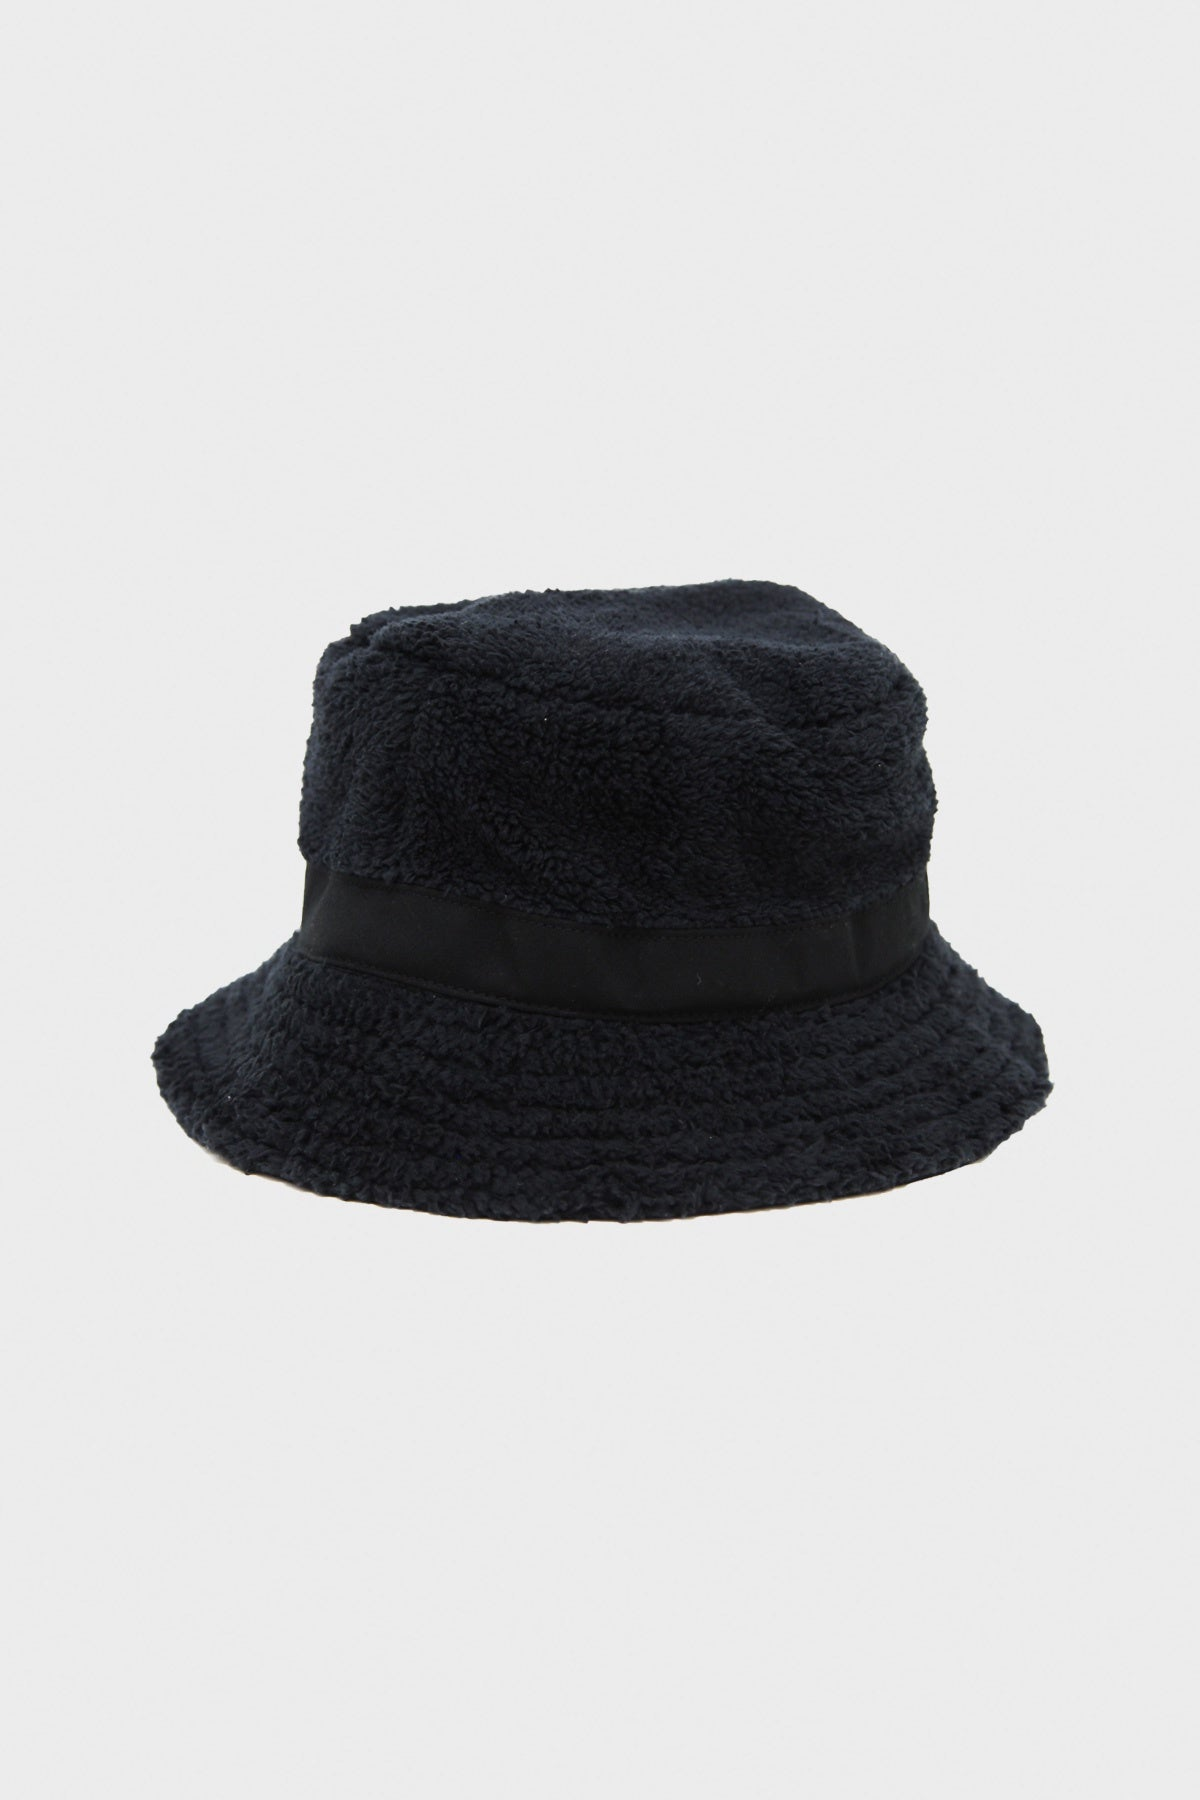 Cableami - Boa Fleece Bucket Hat - Black - Canoe Club